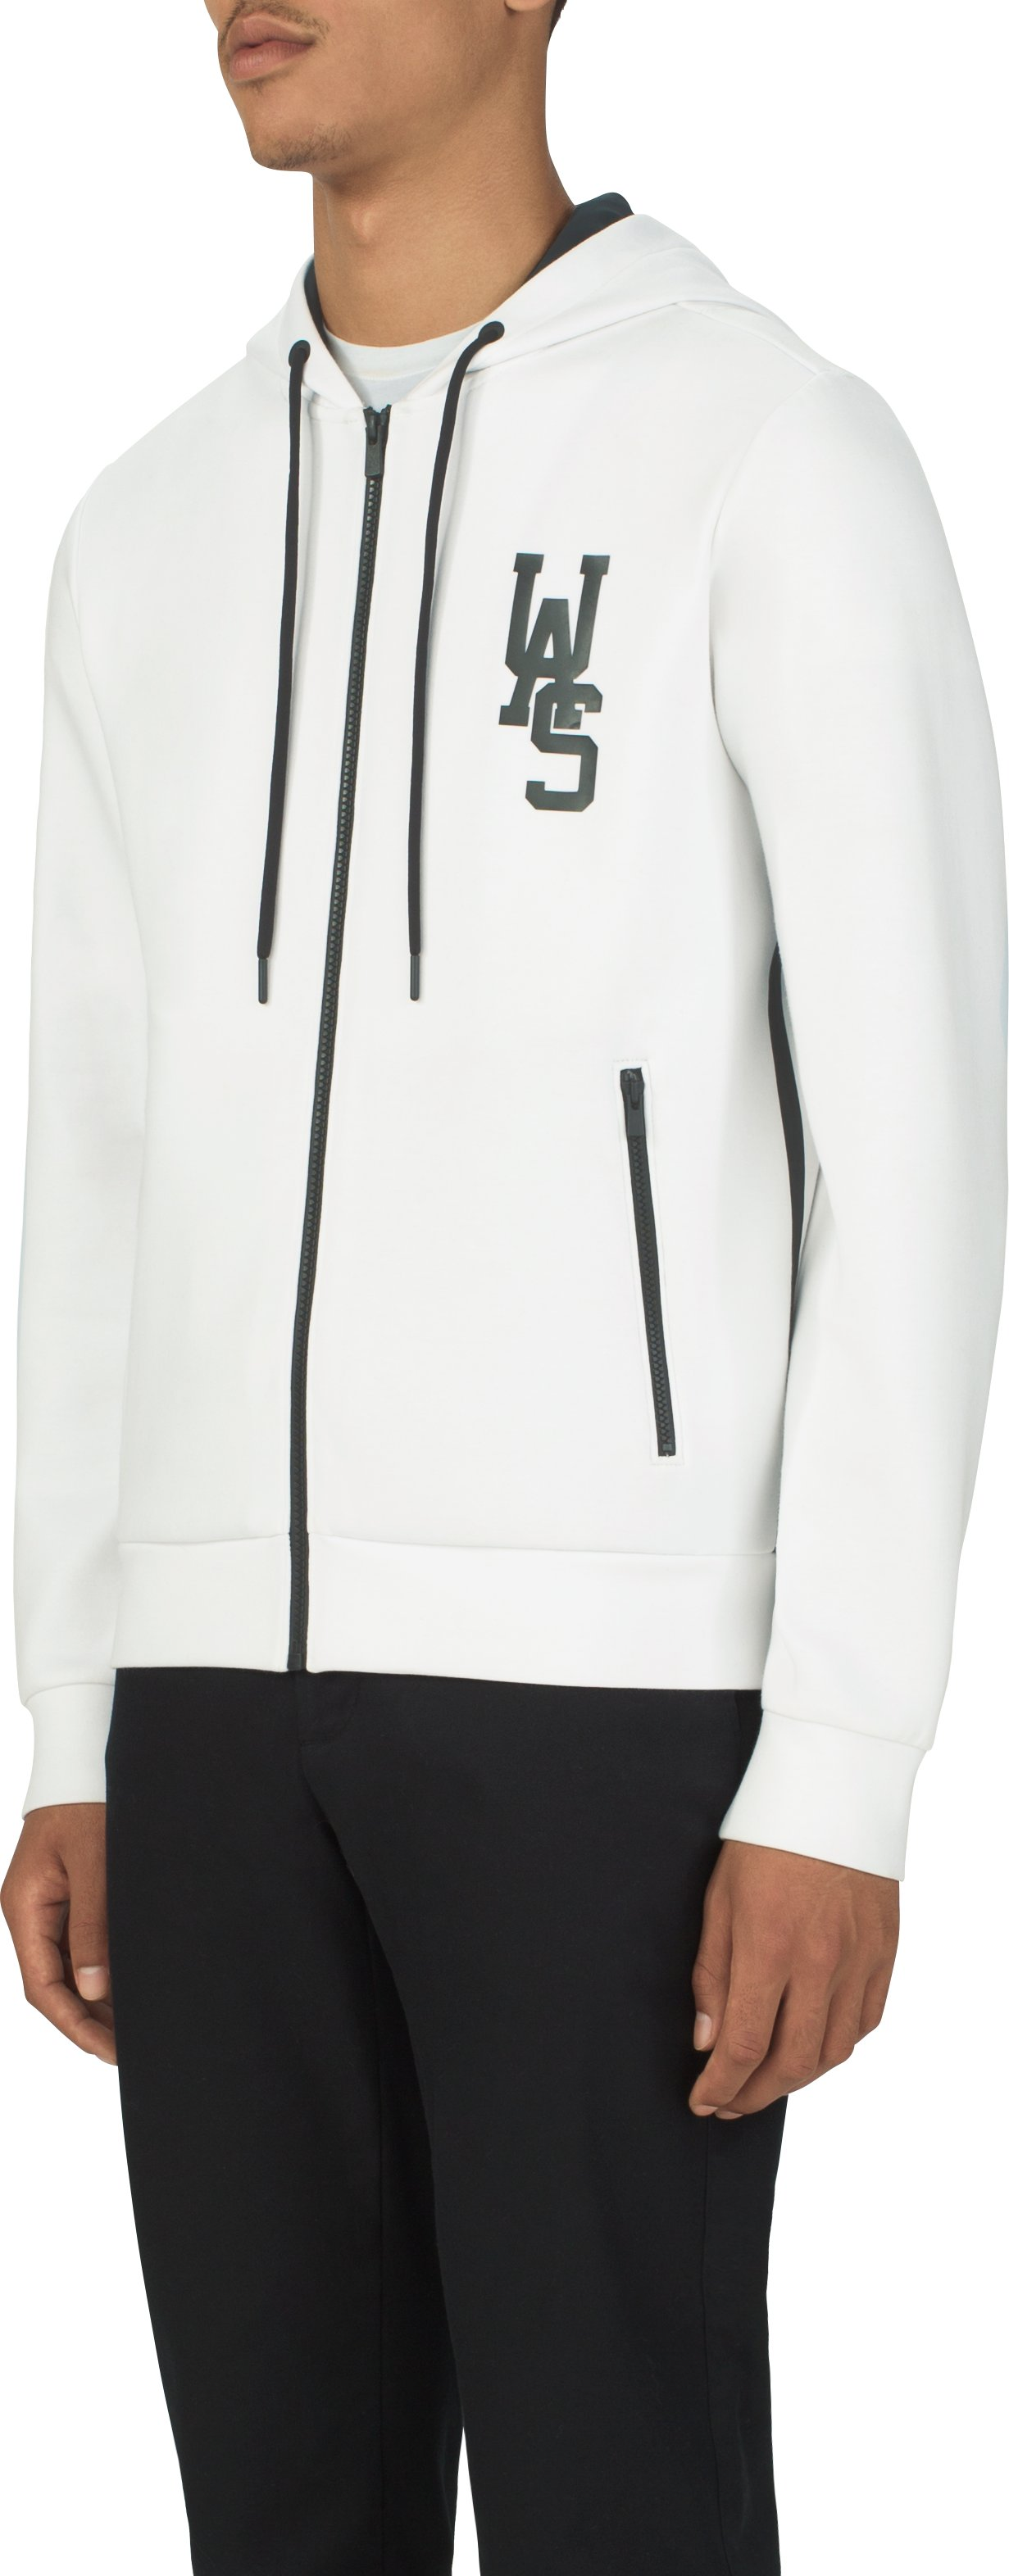 UAS Men's Tailgate Graphic Hoodie, White, undefined